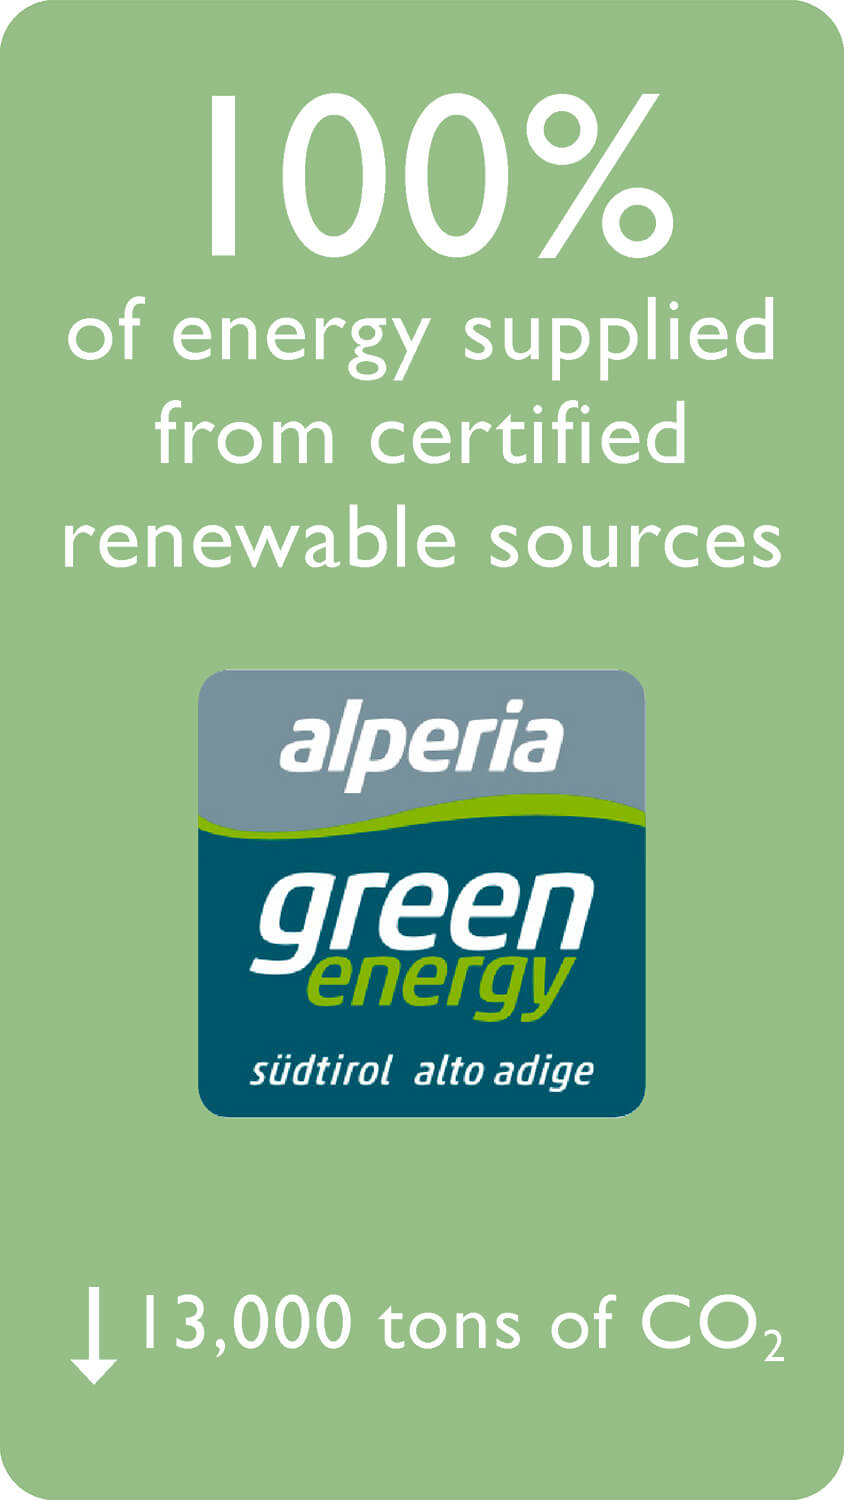 100% of energy supplied from certified renewable sources - 13,000 tons of CO2